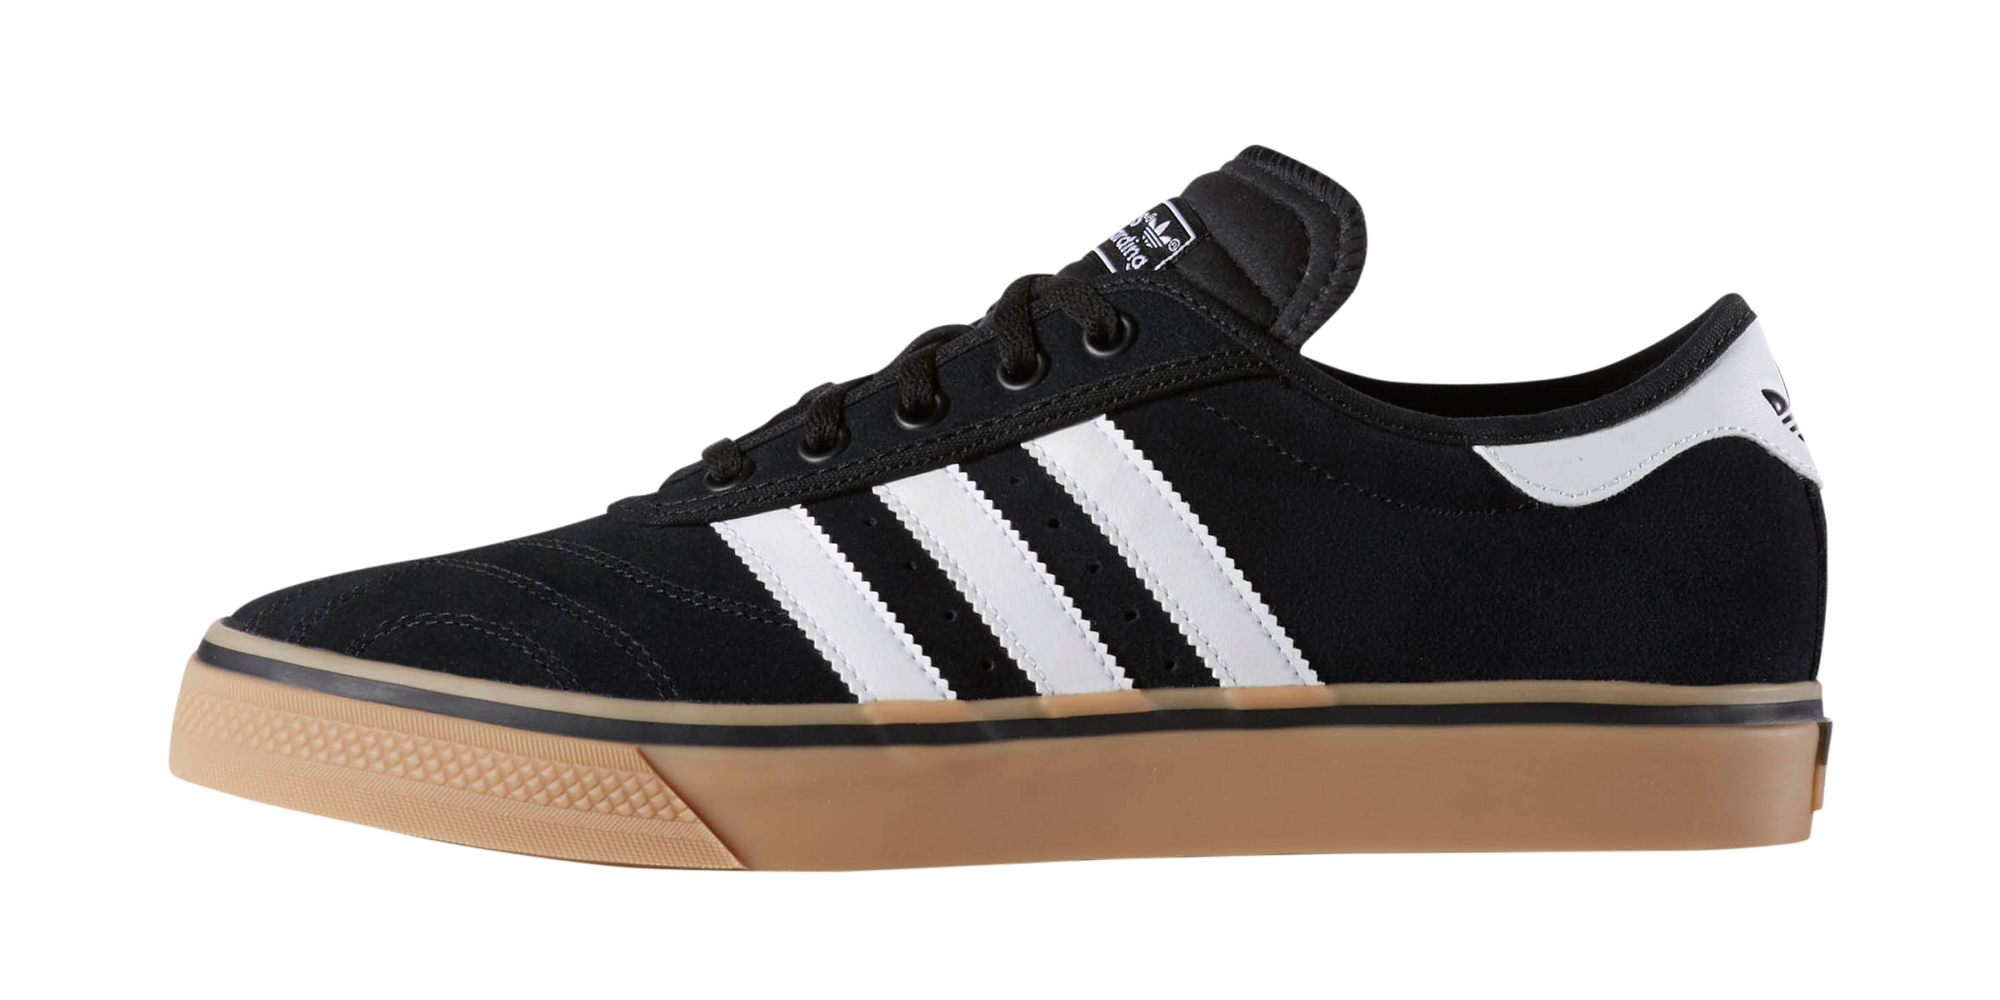 best service 970b3 c4e10 ... shop adidas skateboarding adi ease premiere skate shoes scarpe 073cd  91a29